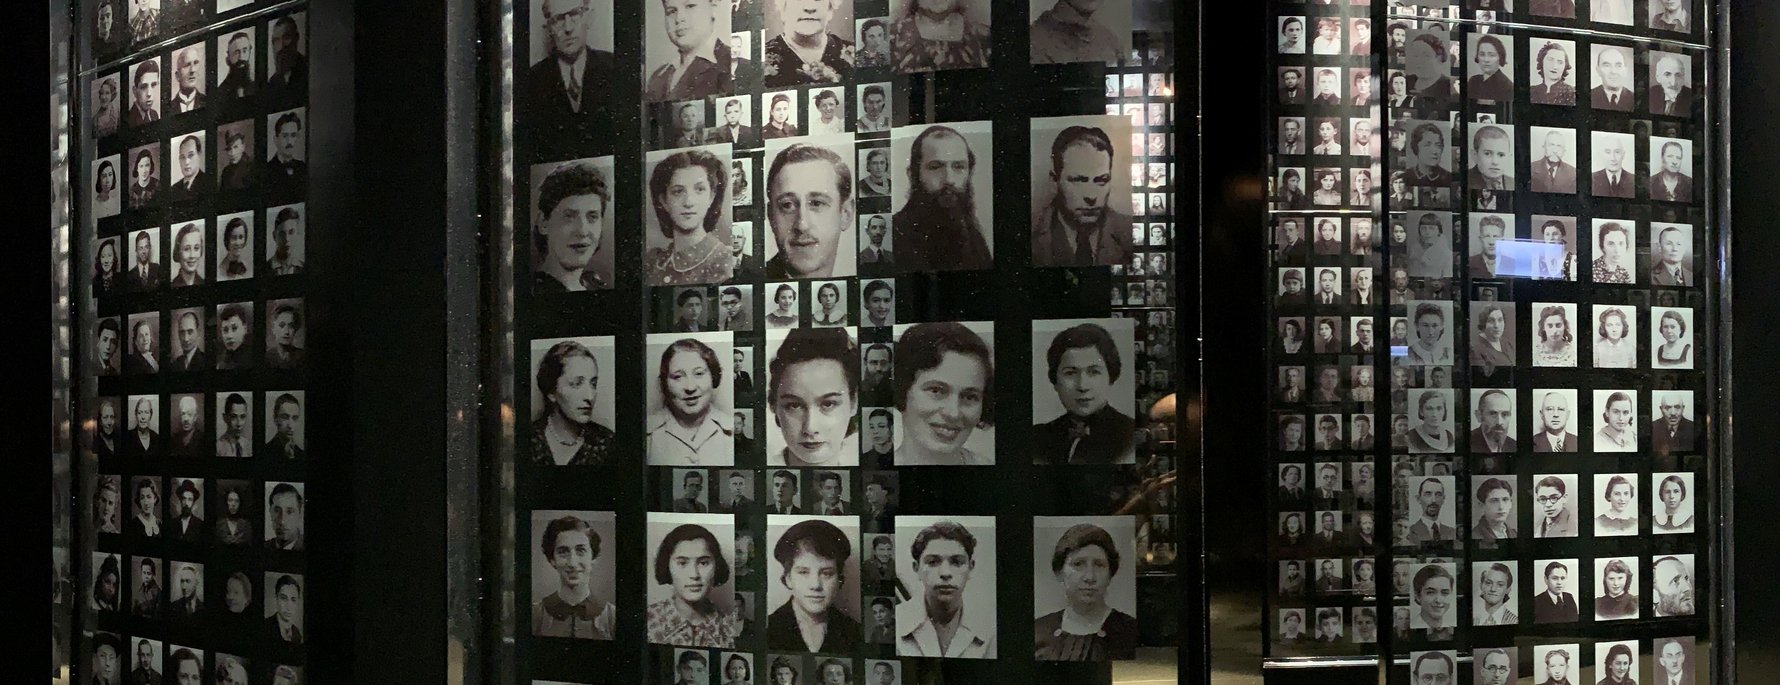 WWII Museum - Holocaust Victims